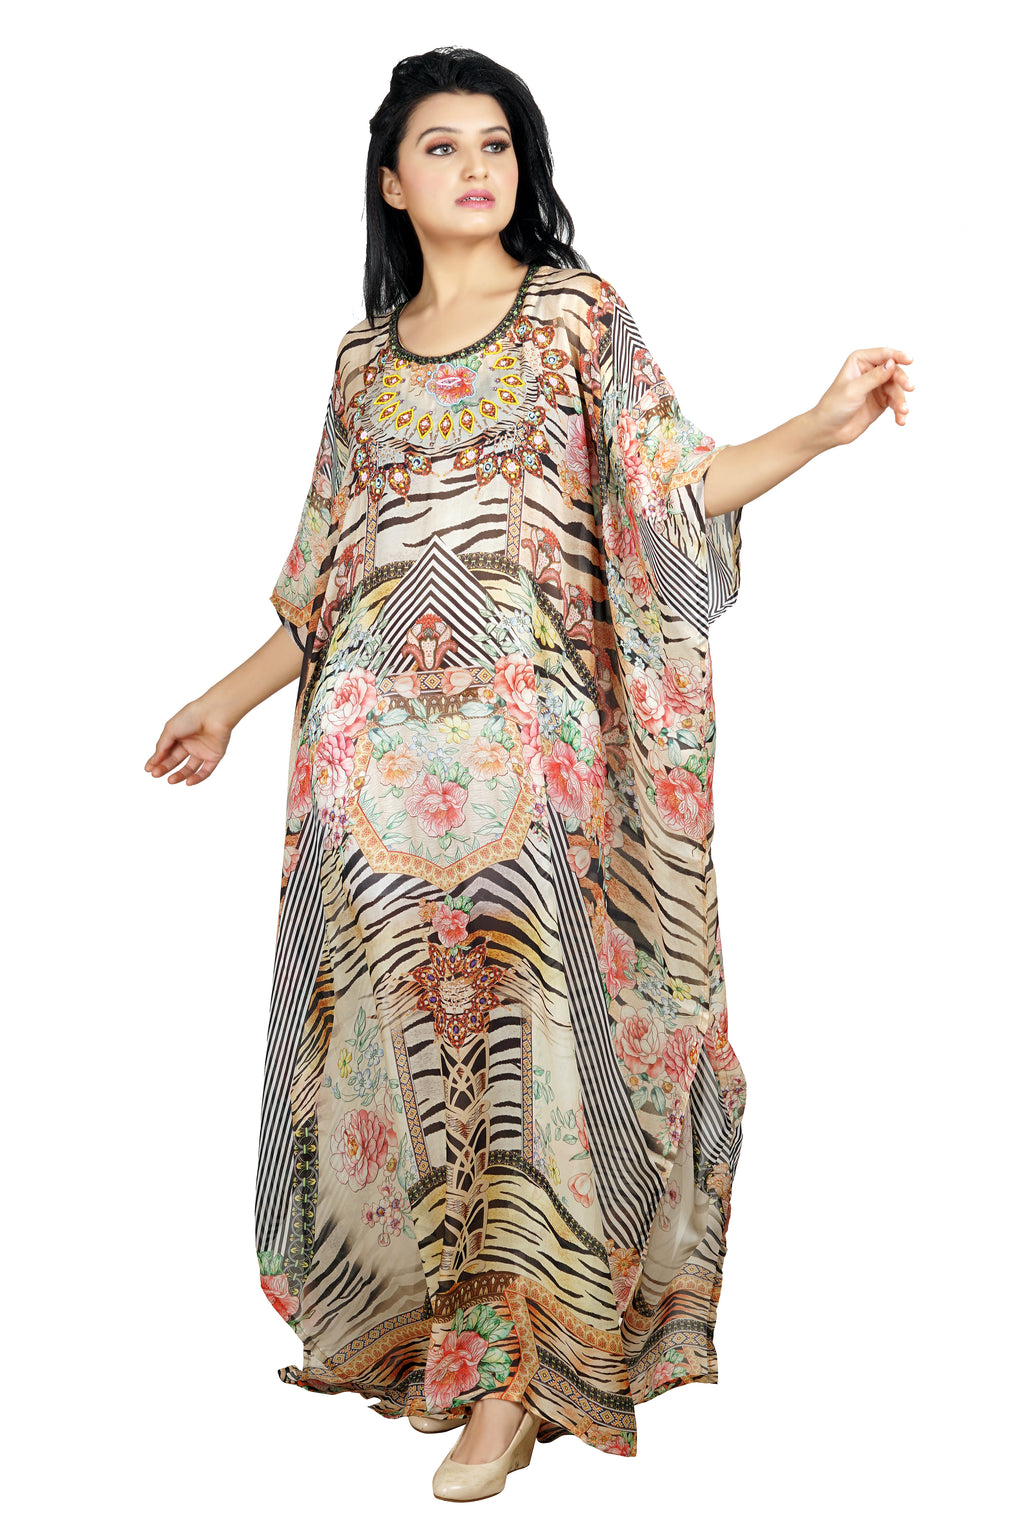 Vibrant mix of animalistic tiger print and floral print with amazing designer Round-neck Resort wear kaftan - Silk kaftan